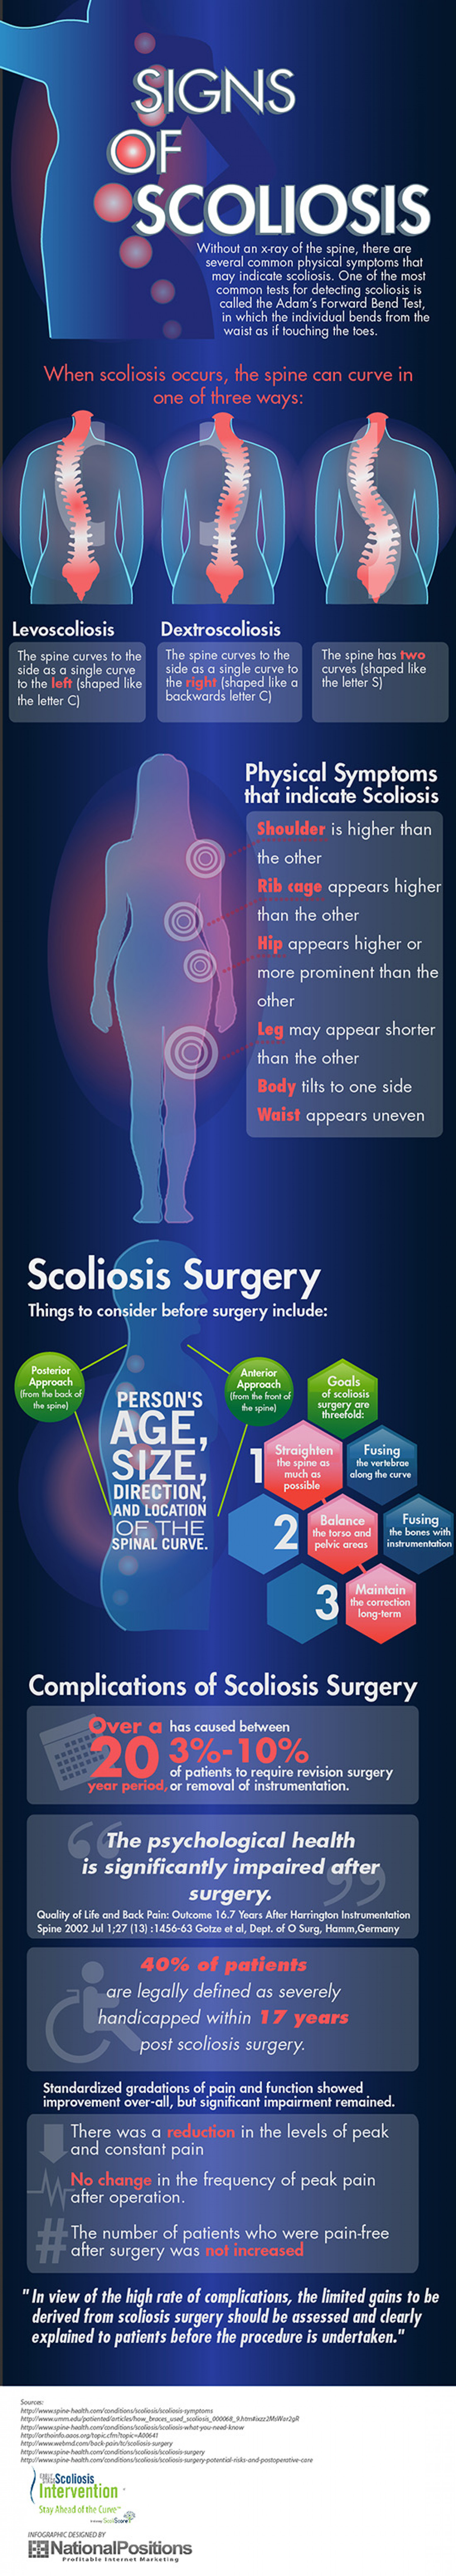 Signs of Scoliosis Infographic